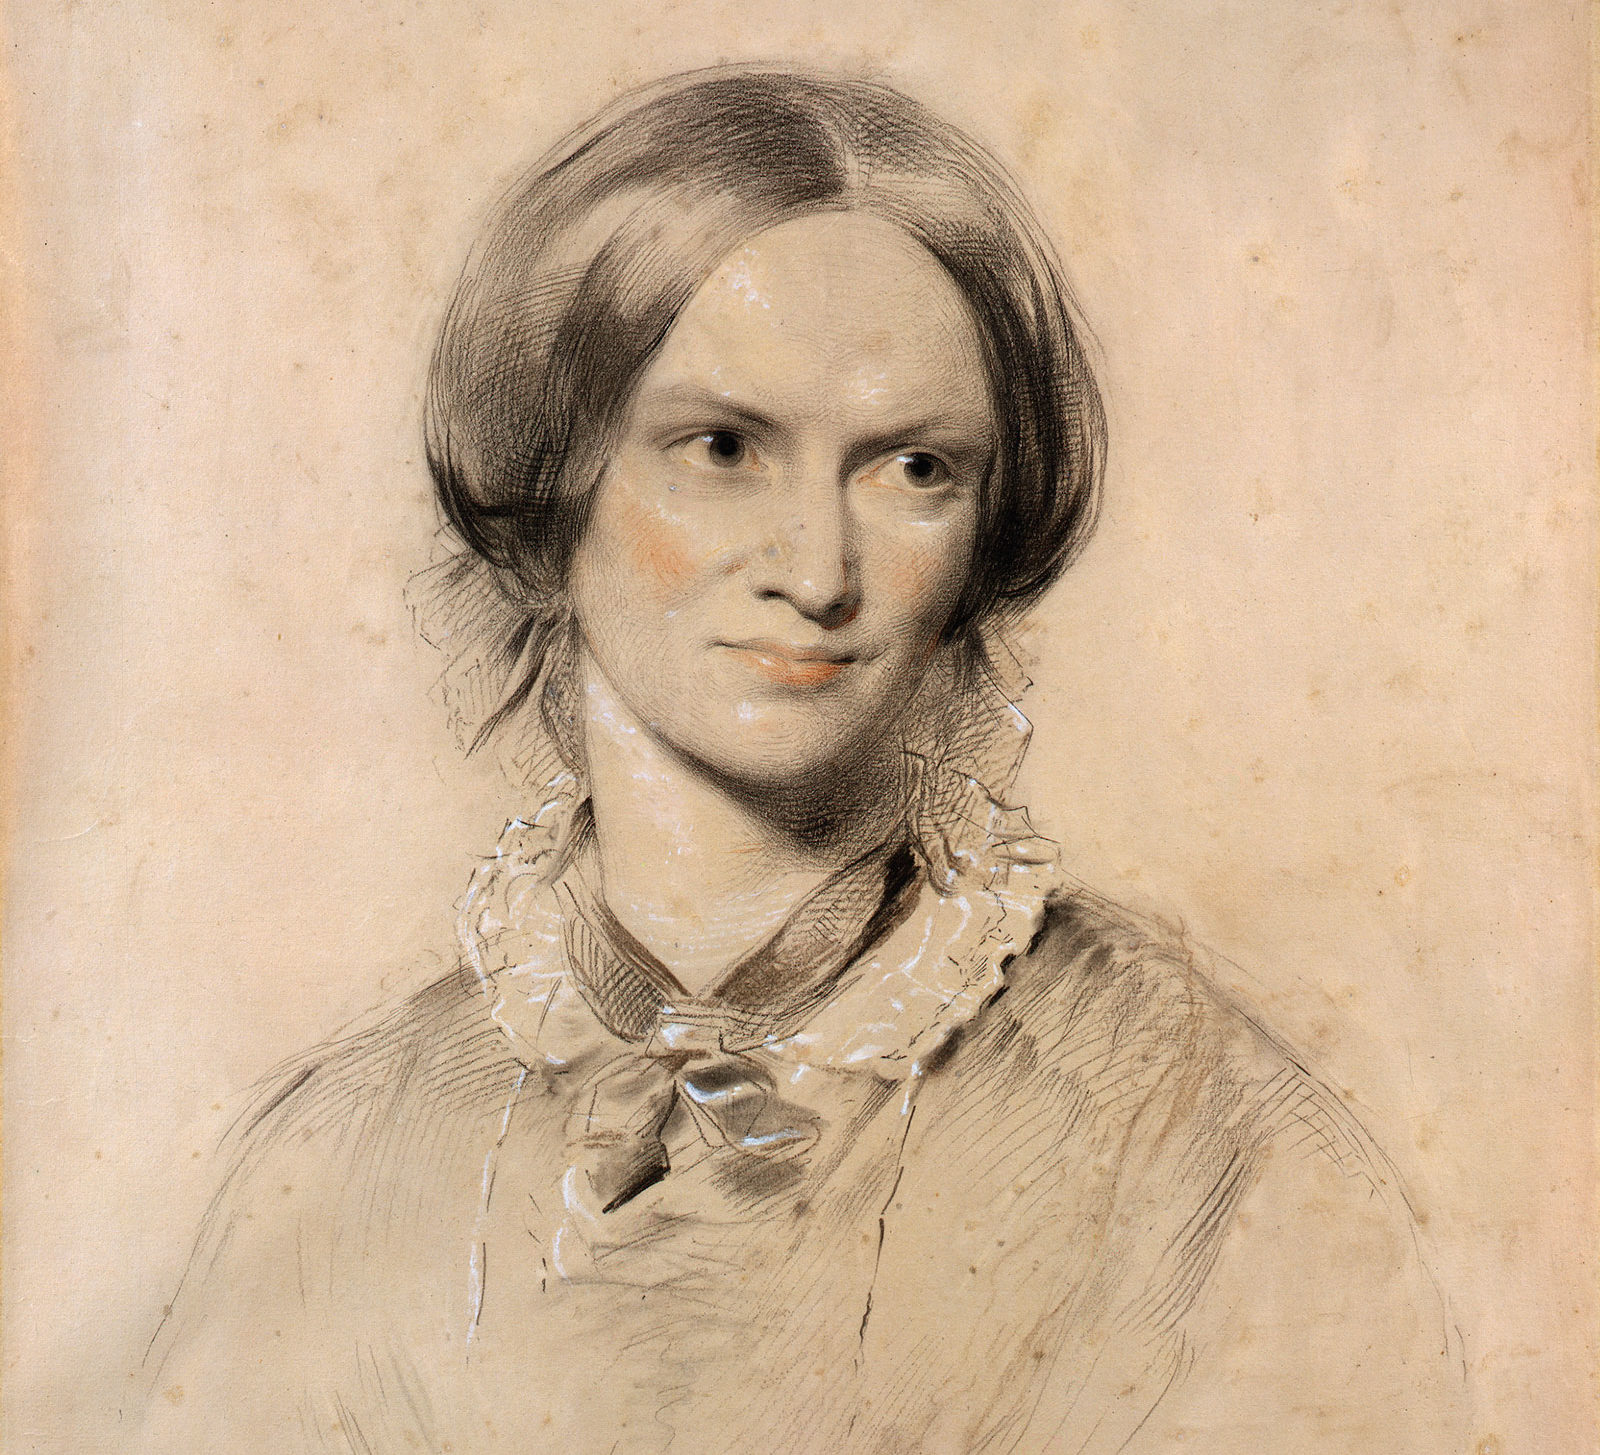 George Richmond: Charlotte Brontë, 1850